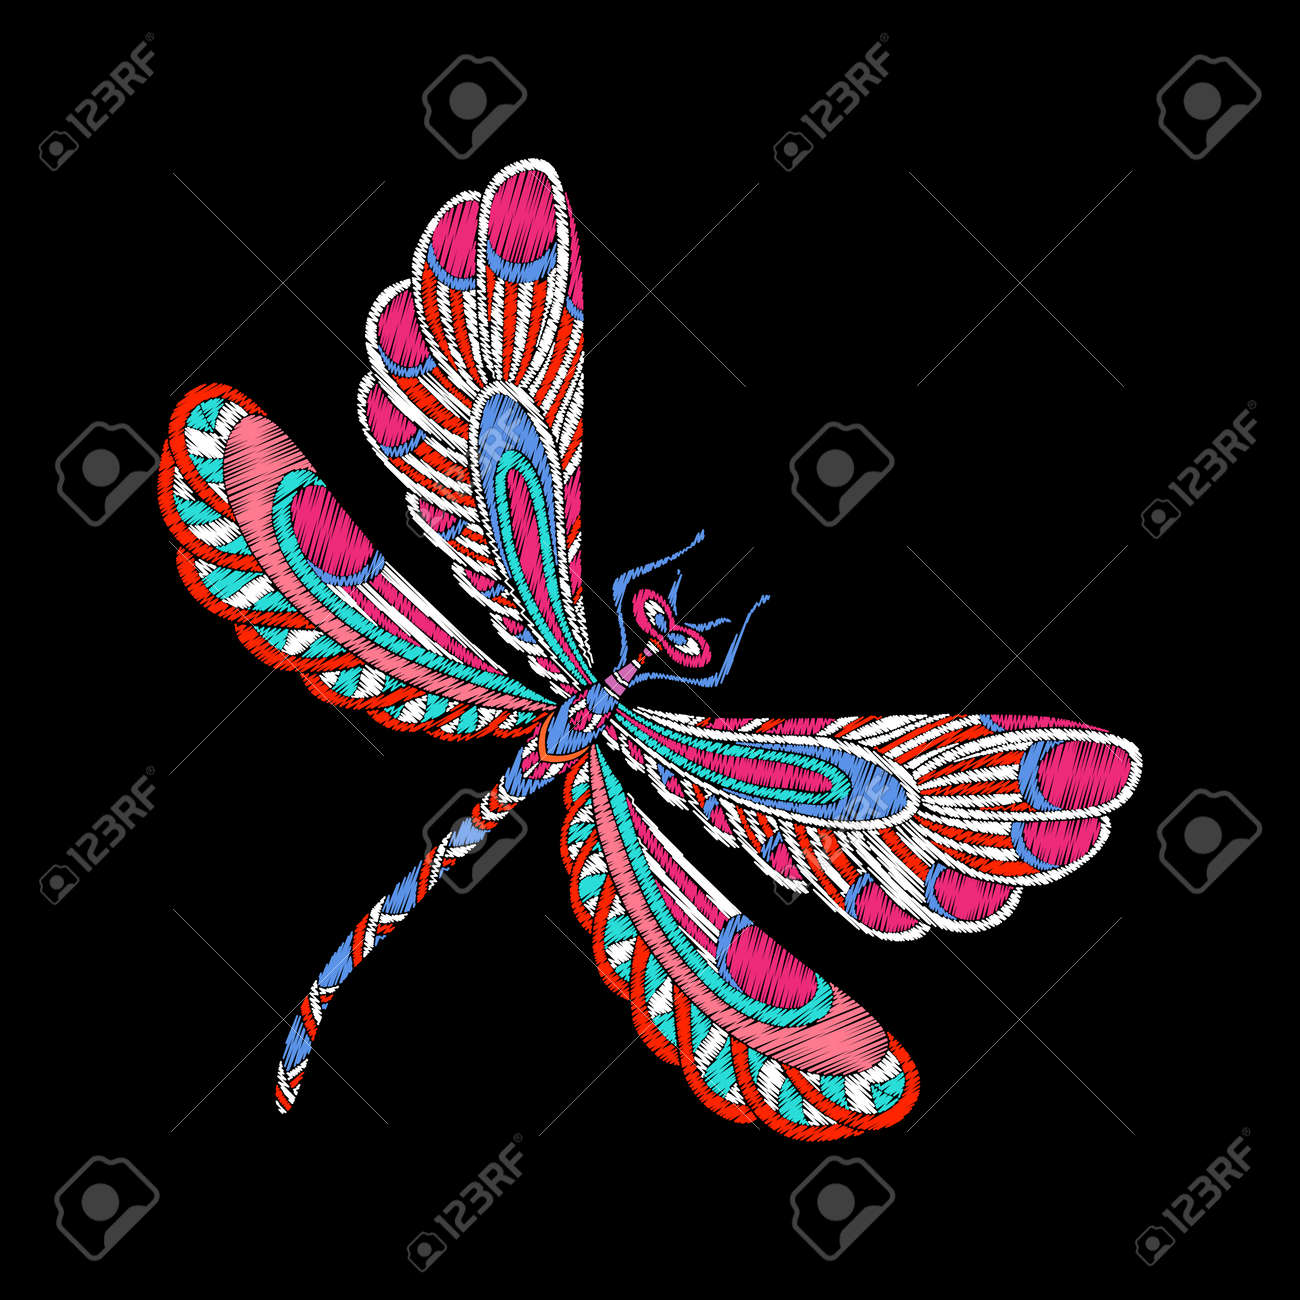 Embroidery Embroidered Design Element Butterfly In Vintage Royalty Free Cliparts Vectors And Stock Illustration Image 86311960